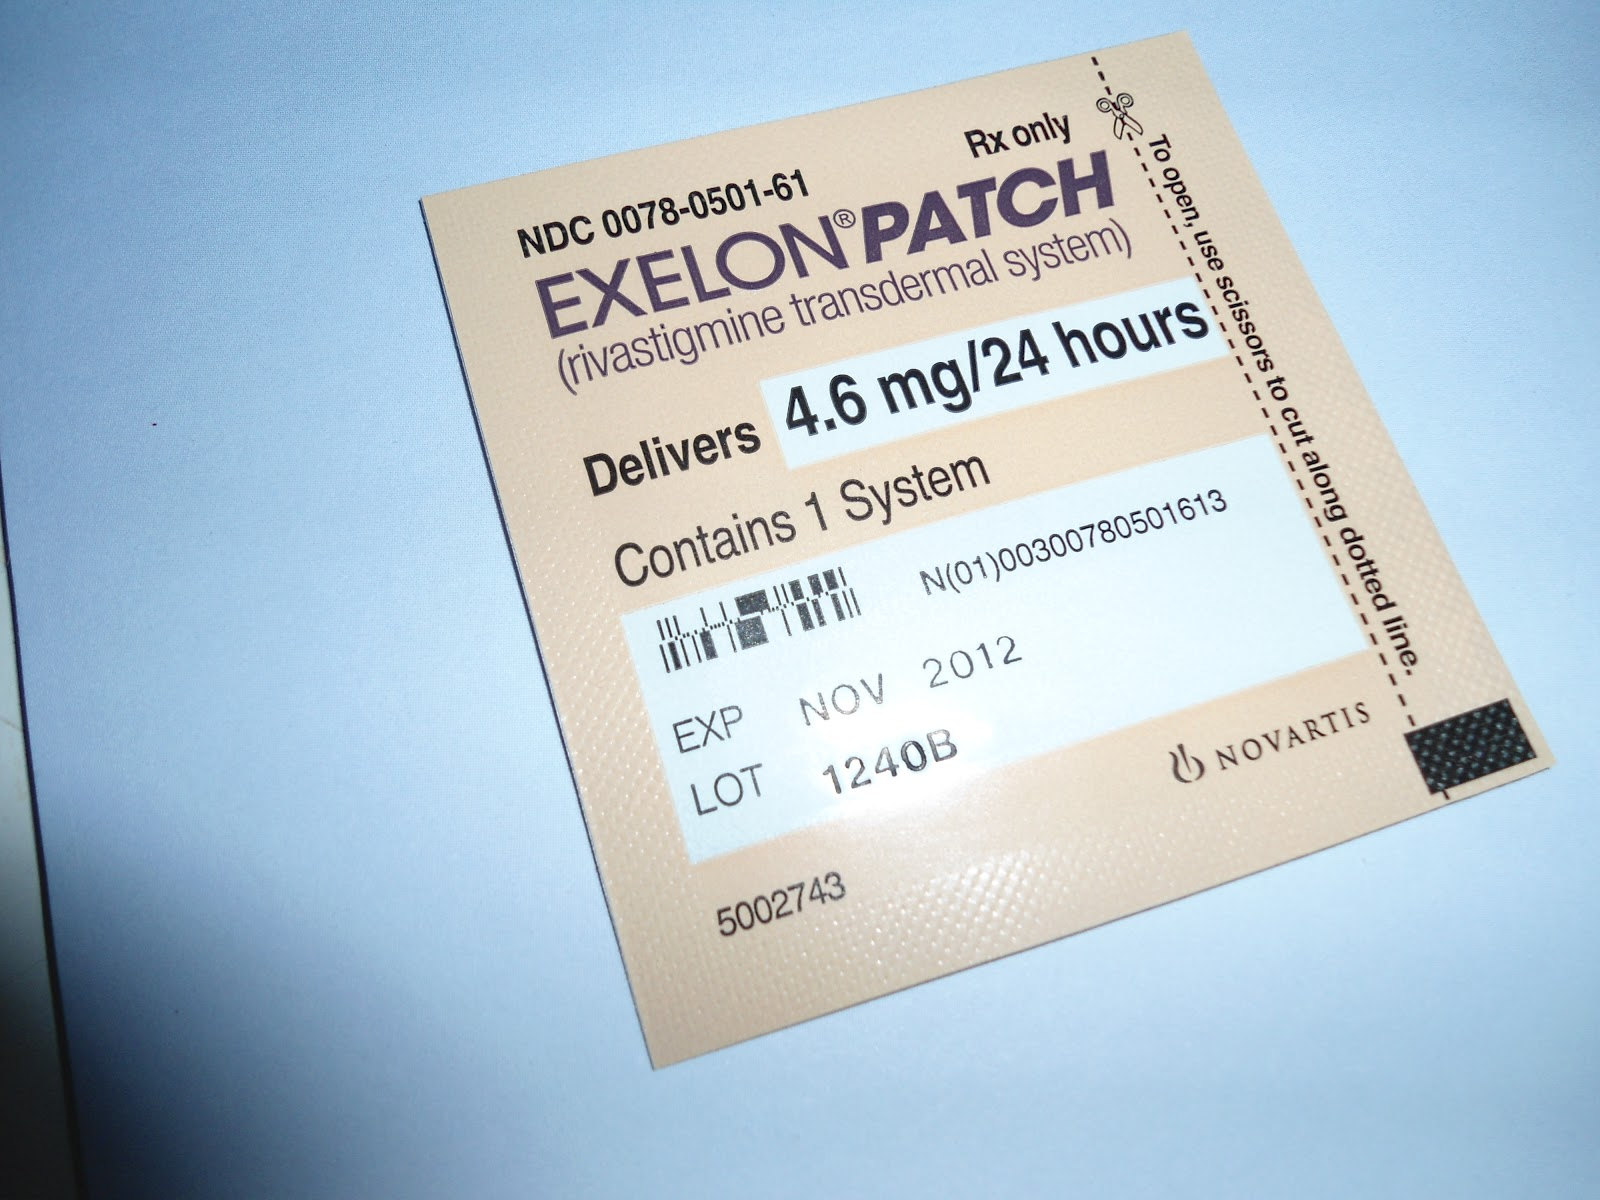 Exelon 4.5 mg